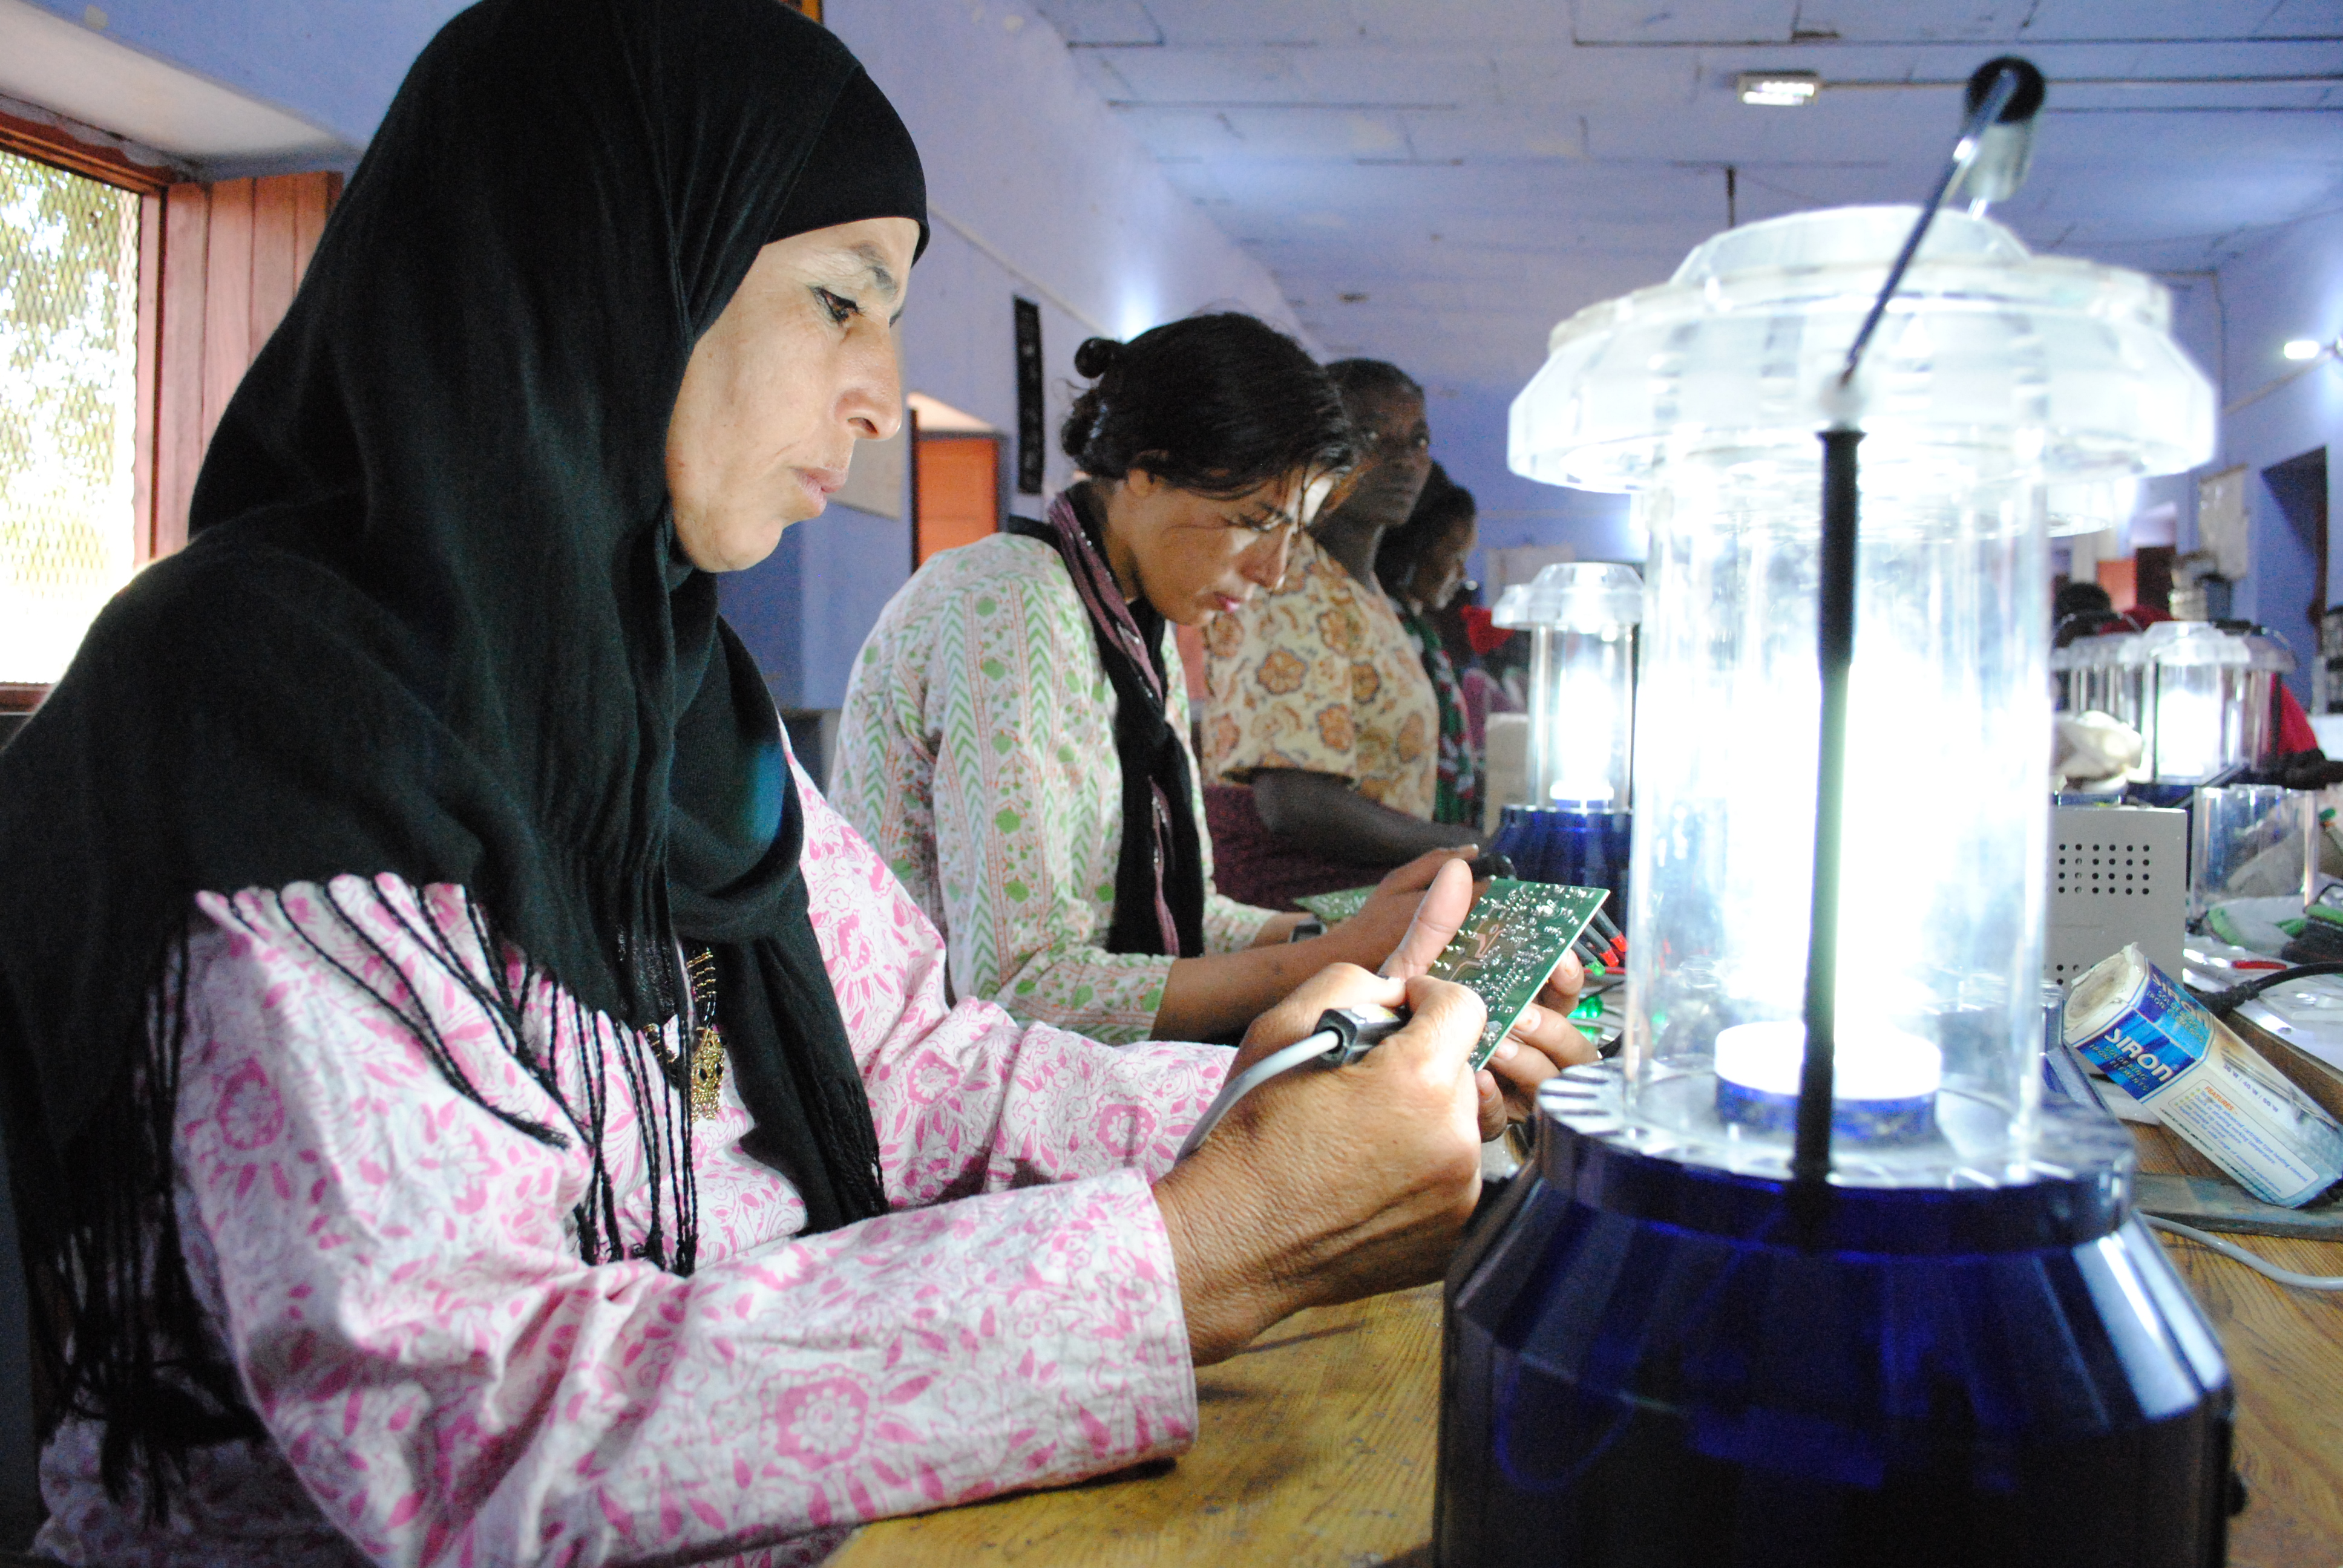 Barefoot College teaches rural Bedouin women in Jordan how to be electricians. The world needs skills, not just lawyers and doctors. Learn why more parents help their kids find technical careers.